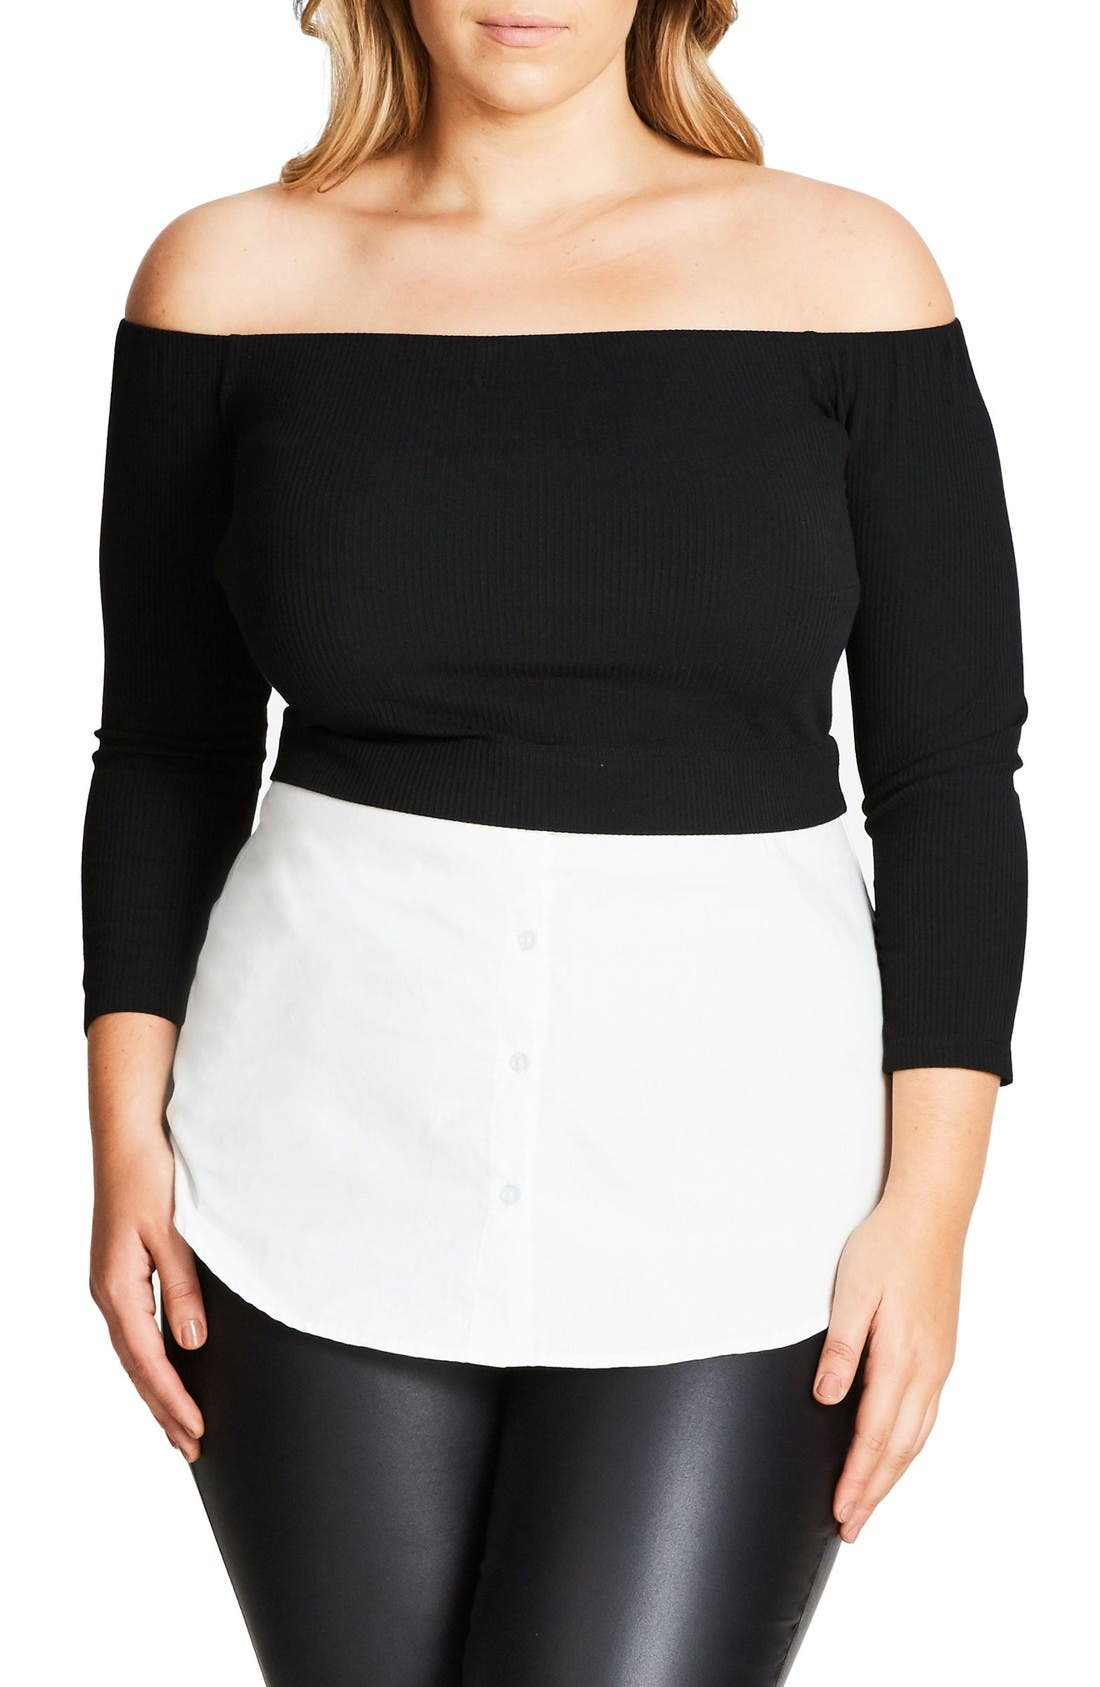 CITY CHIC Layer Look Off the Shoulder Top